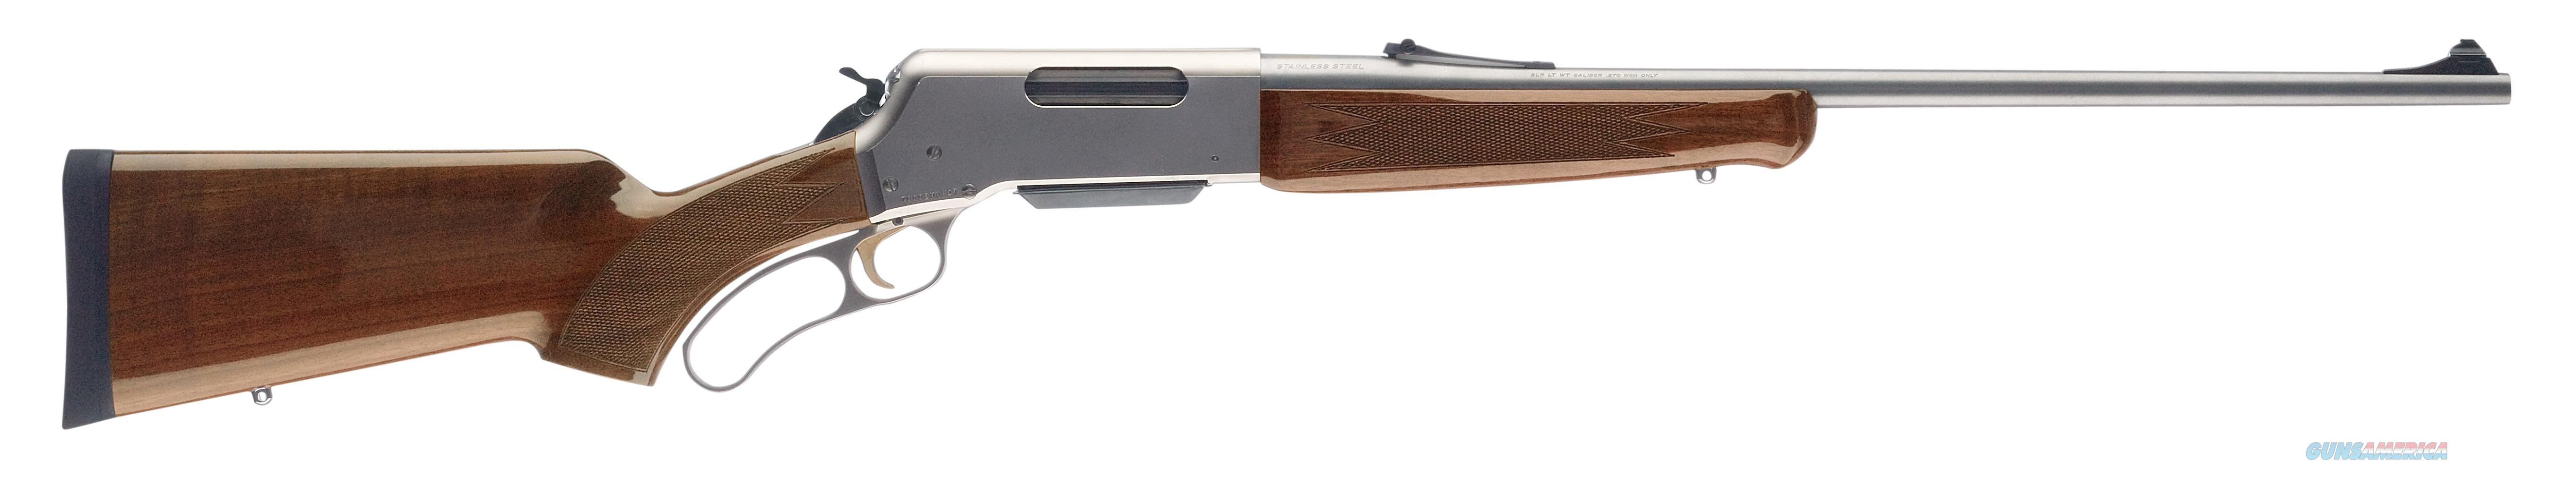 BROWNING BLR LTWT 270WIN WOOD SS PISTOL GRIP 034018124  Guns > Rifles > Browning Rifles > Lever Action